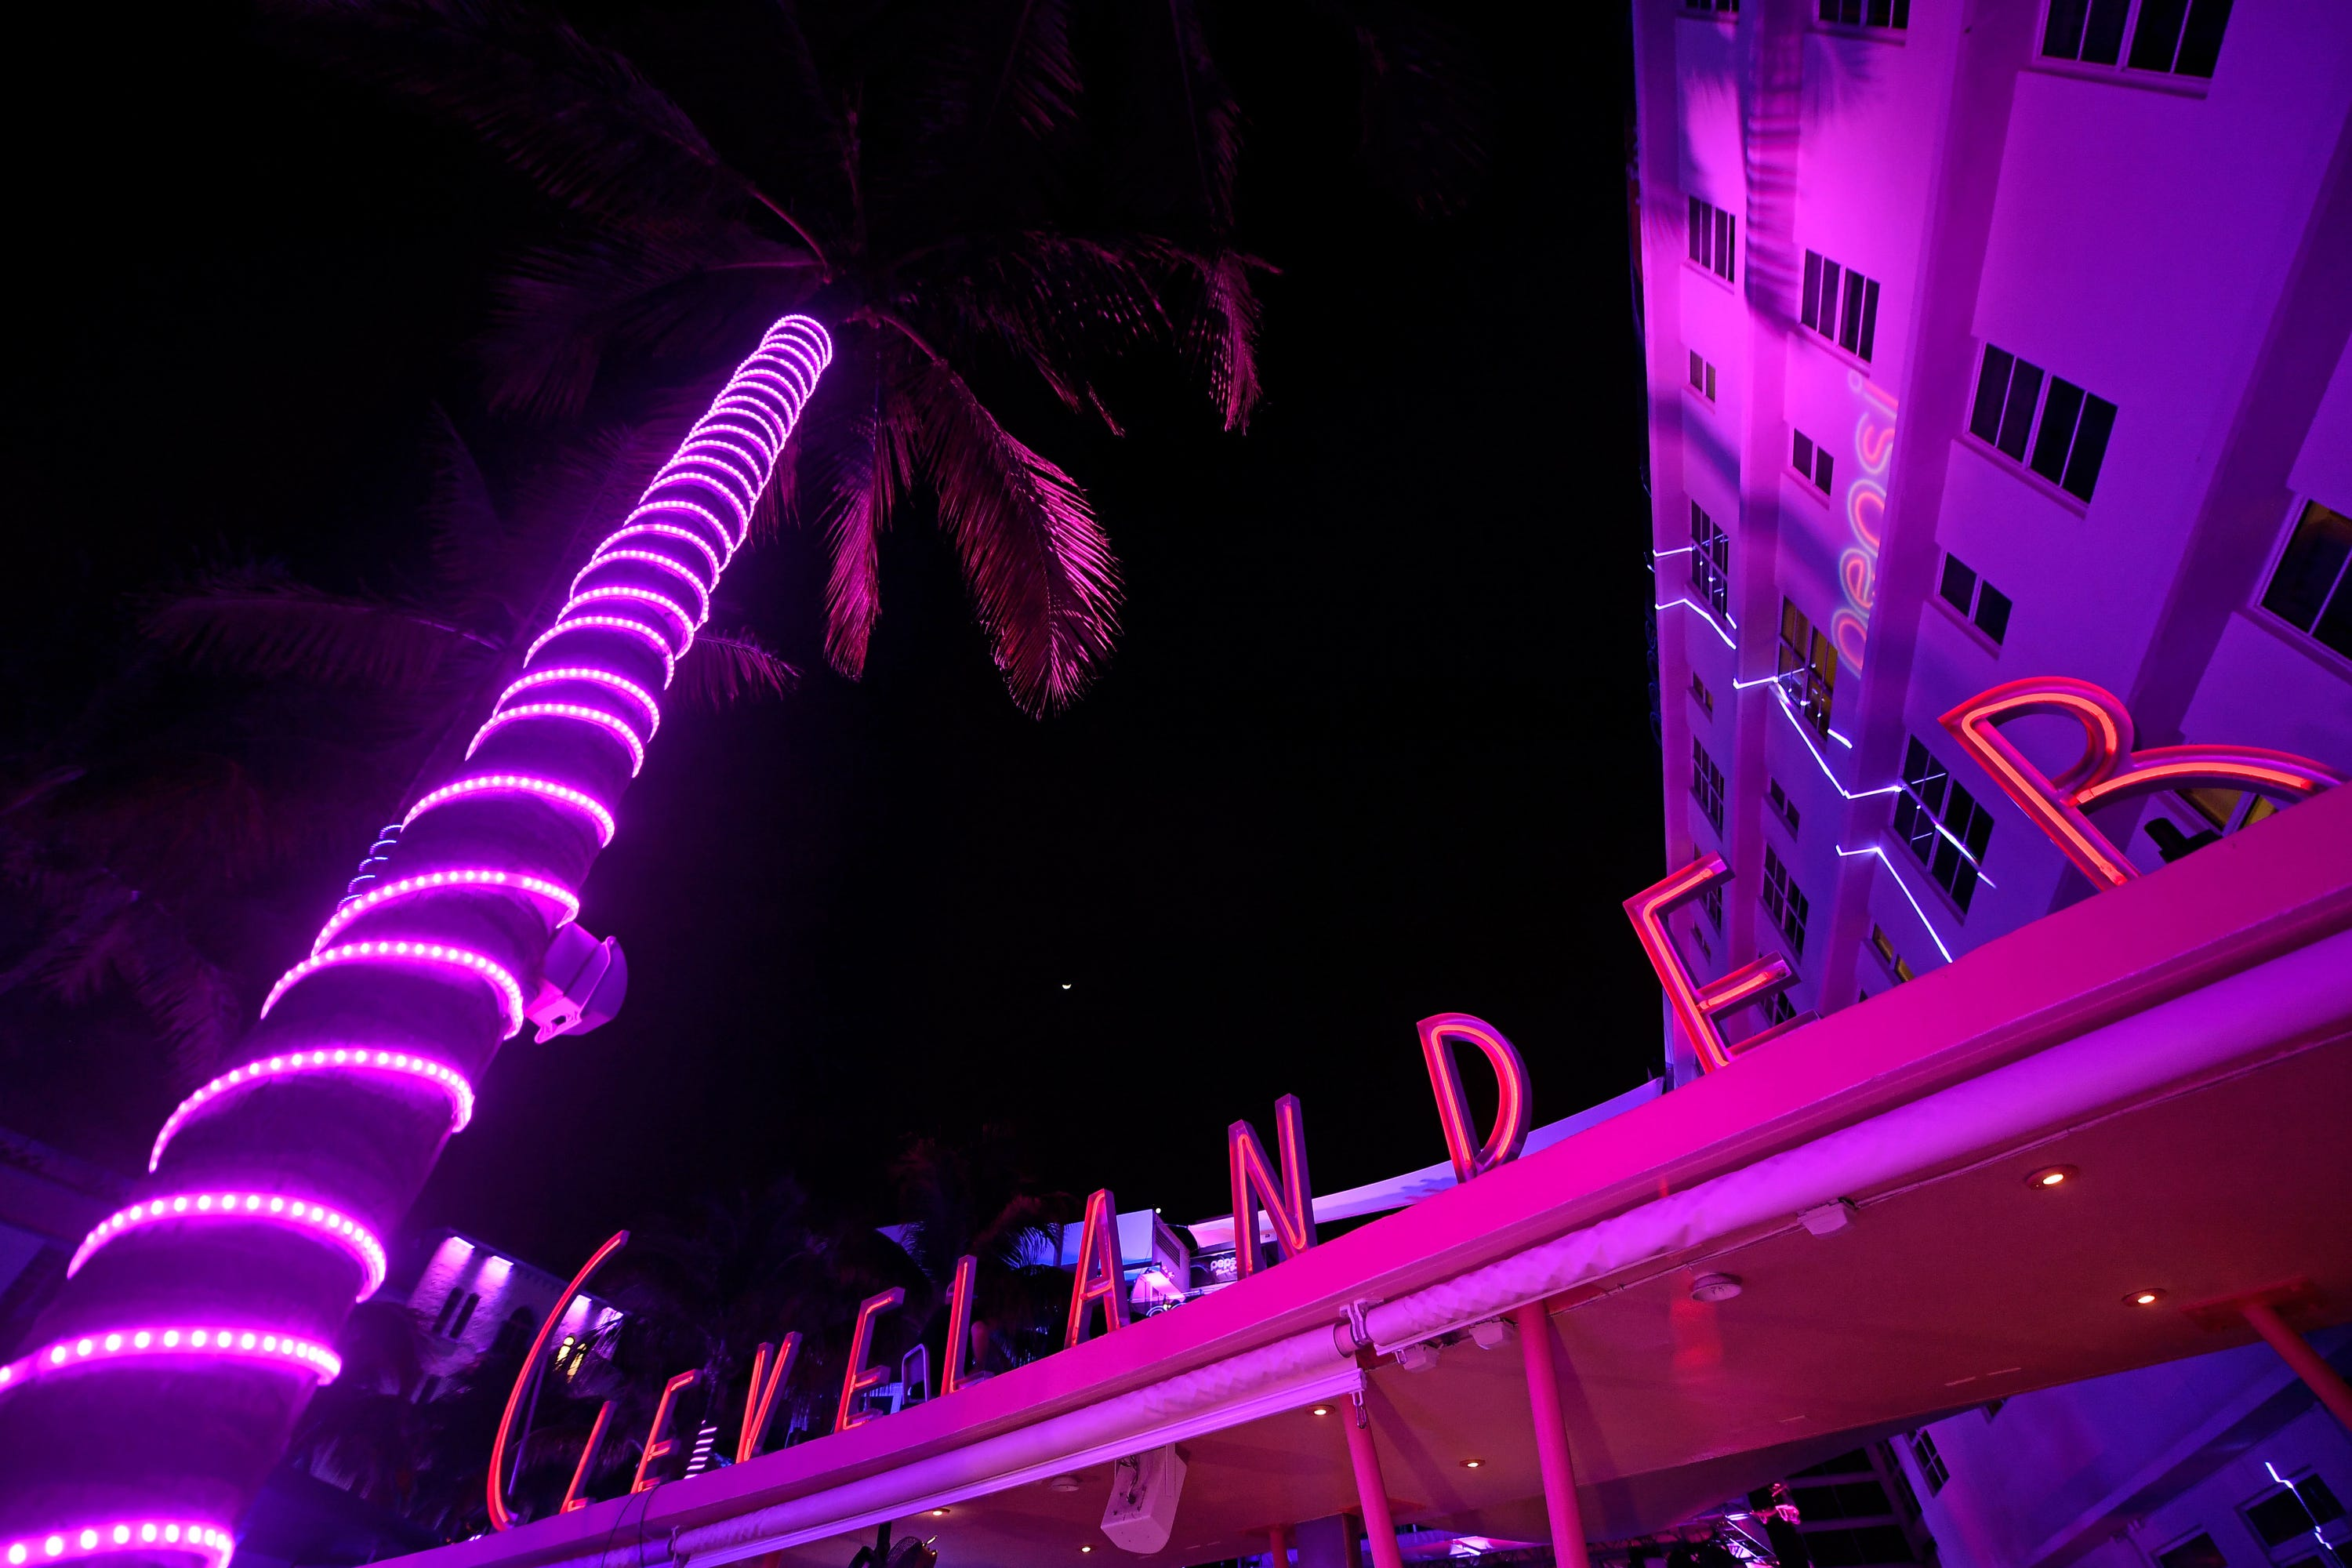 Miami party hotspot closes food and beverage service temporarily amid spring break chaos